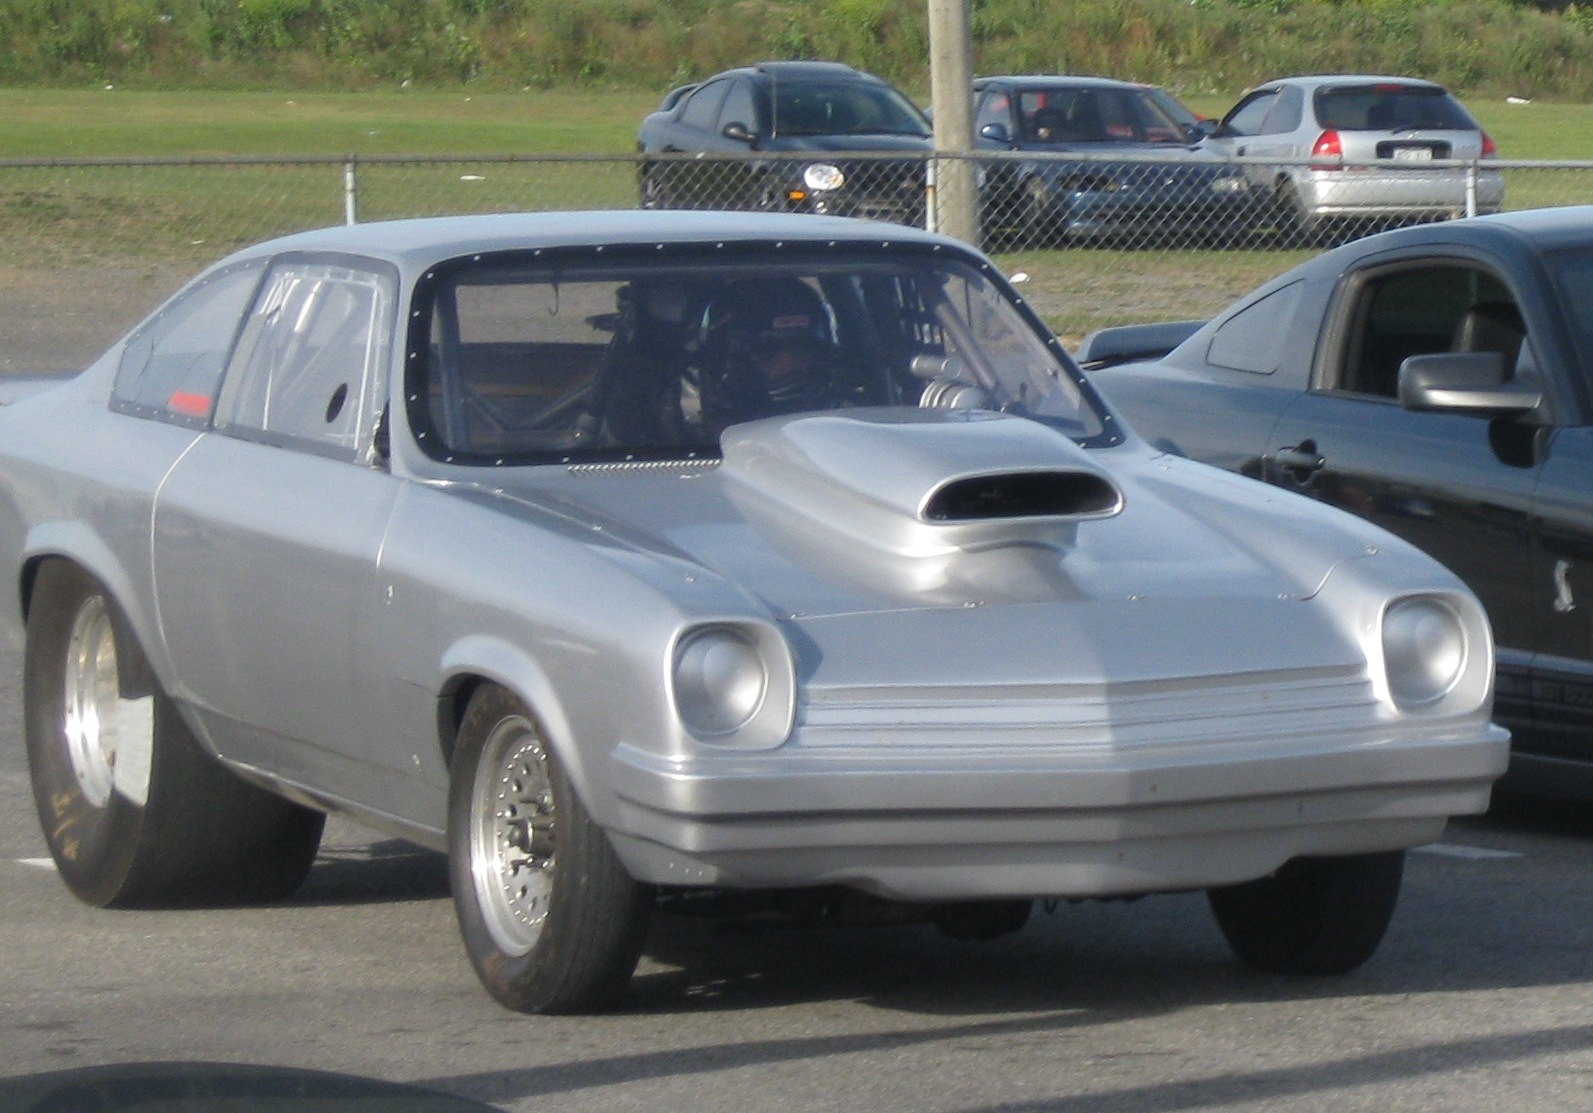 1974 Chevrolet Vega 1/4 mile trap speeds 0-60 - DragTimes.com